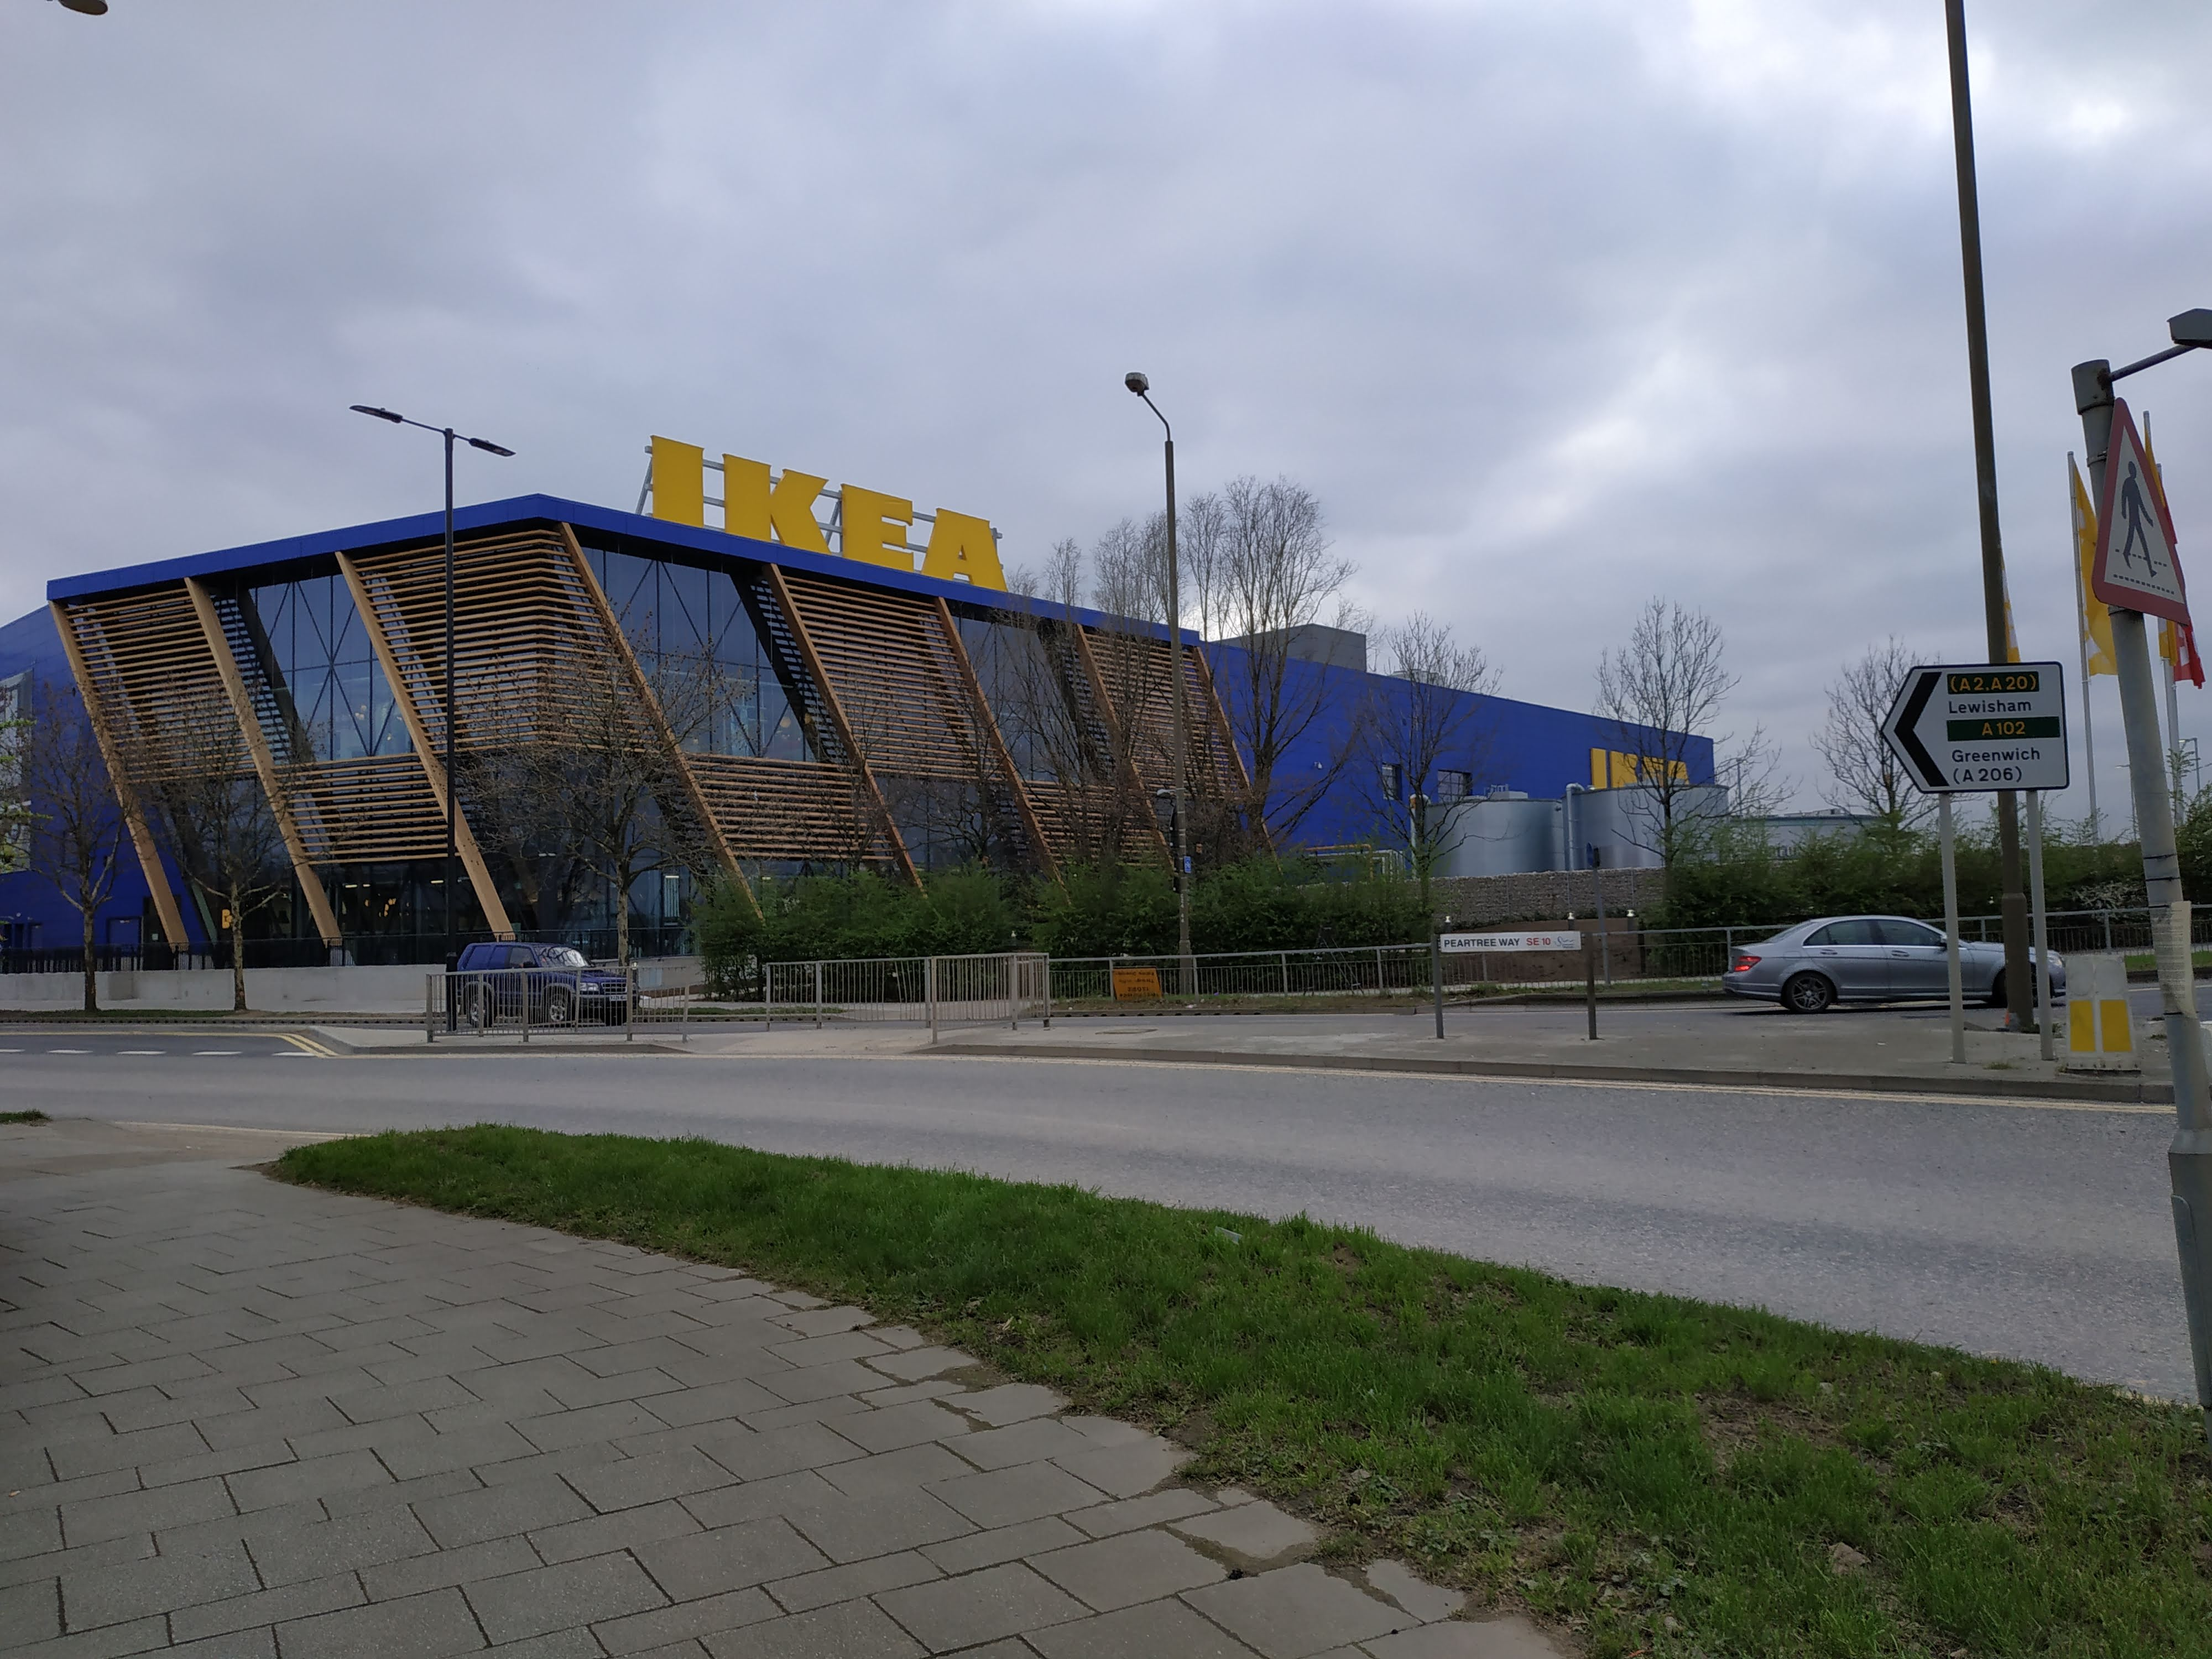 Returning to Greenwich Ikea two months on – any pedestrian improvements?